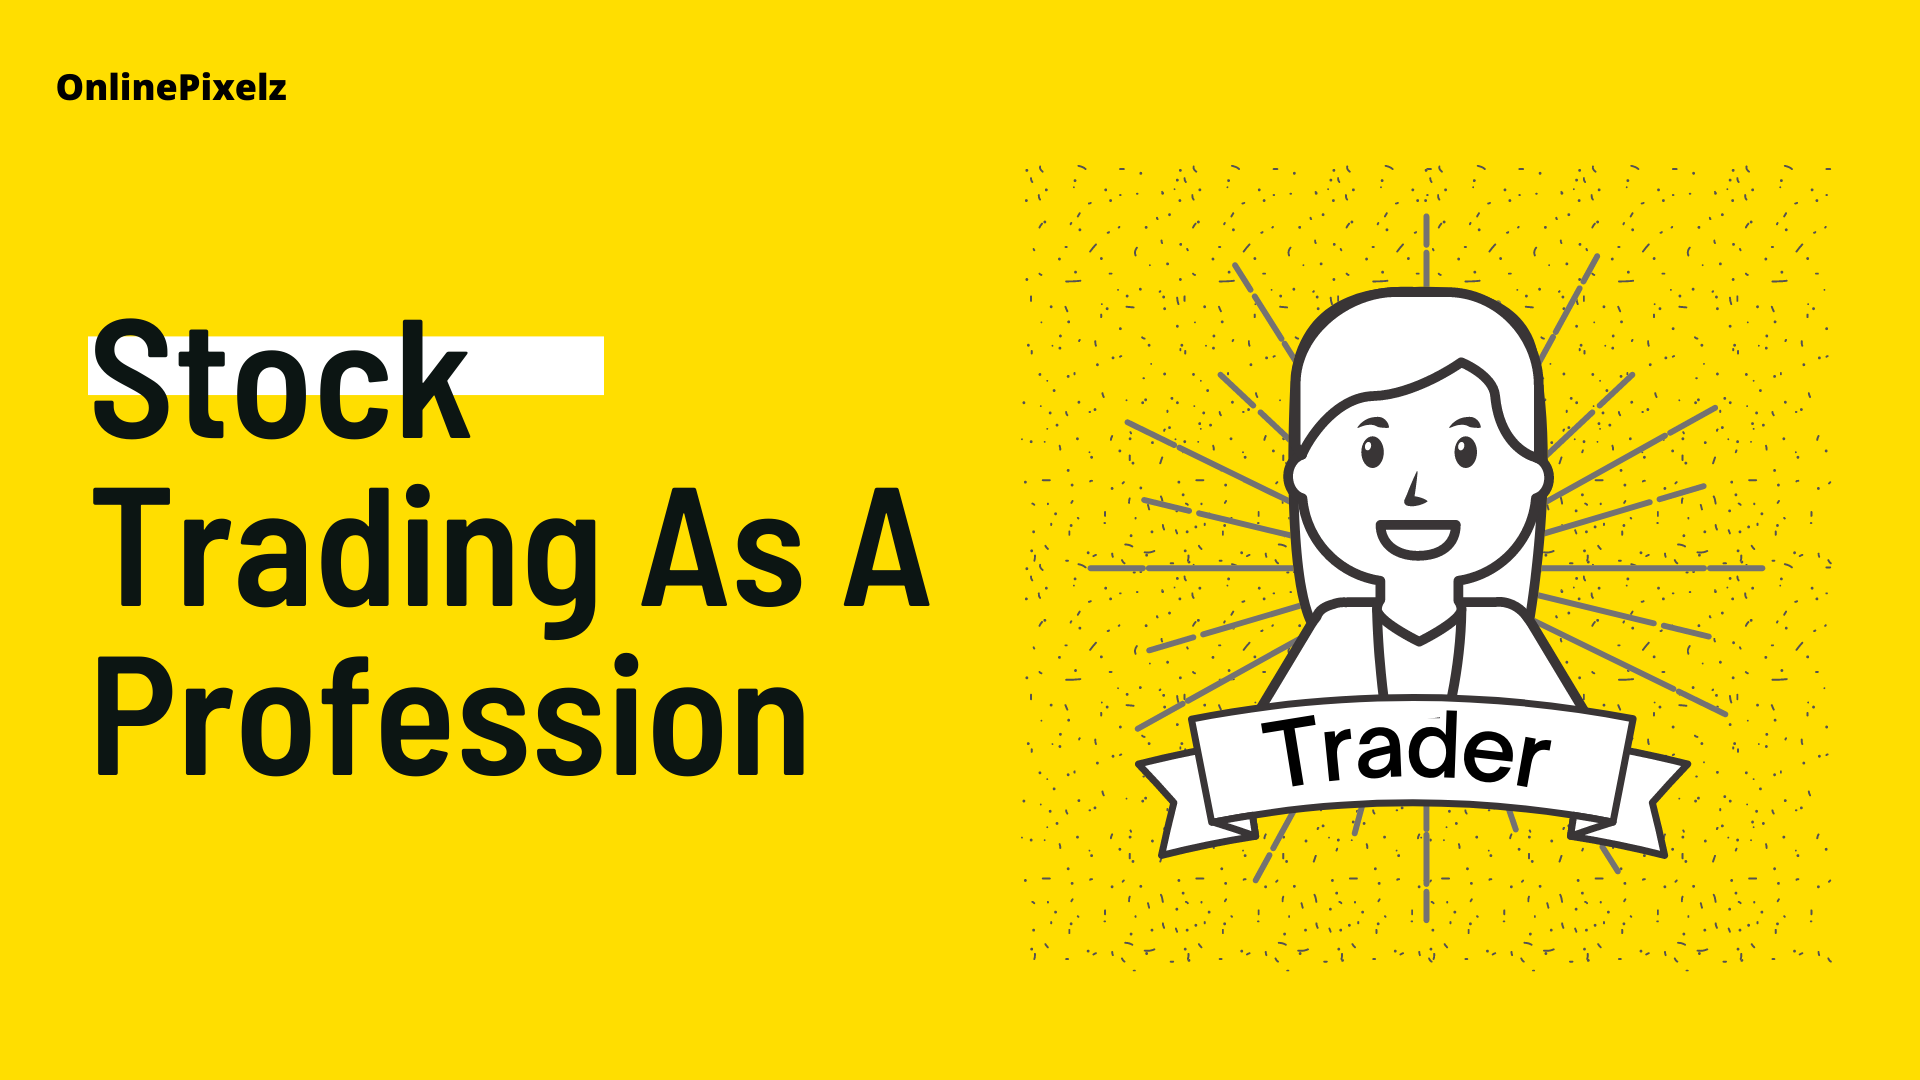 Stock Trading As A Profession